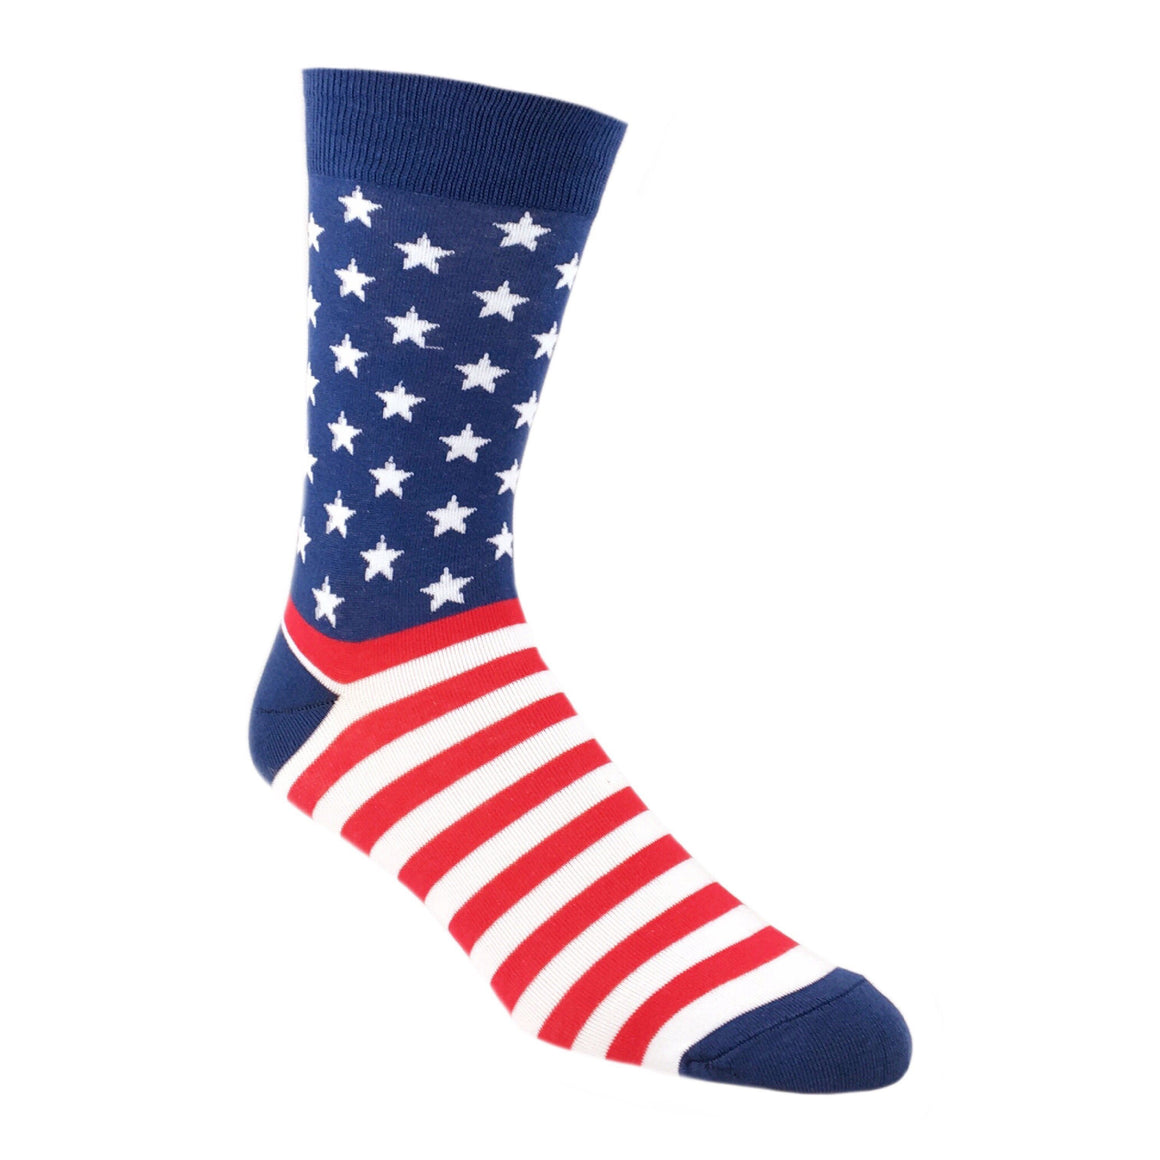 Socks - Team America Patriotic Flag Socks